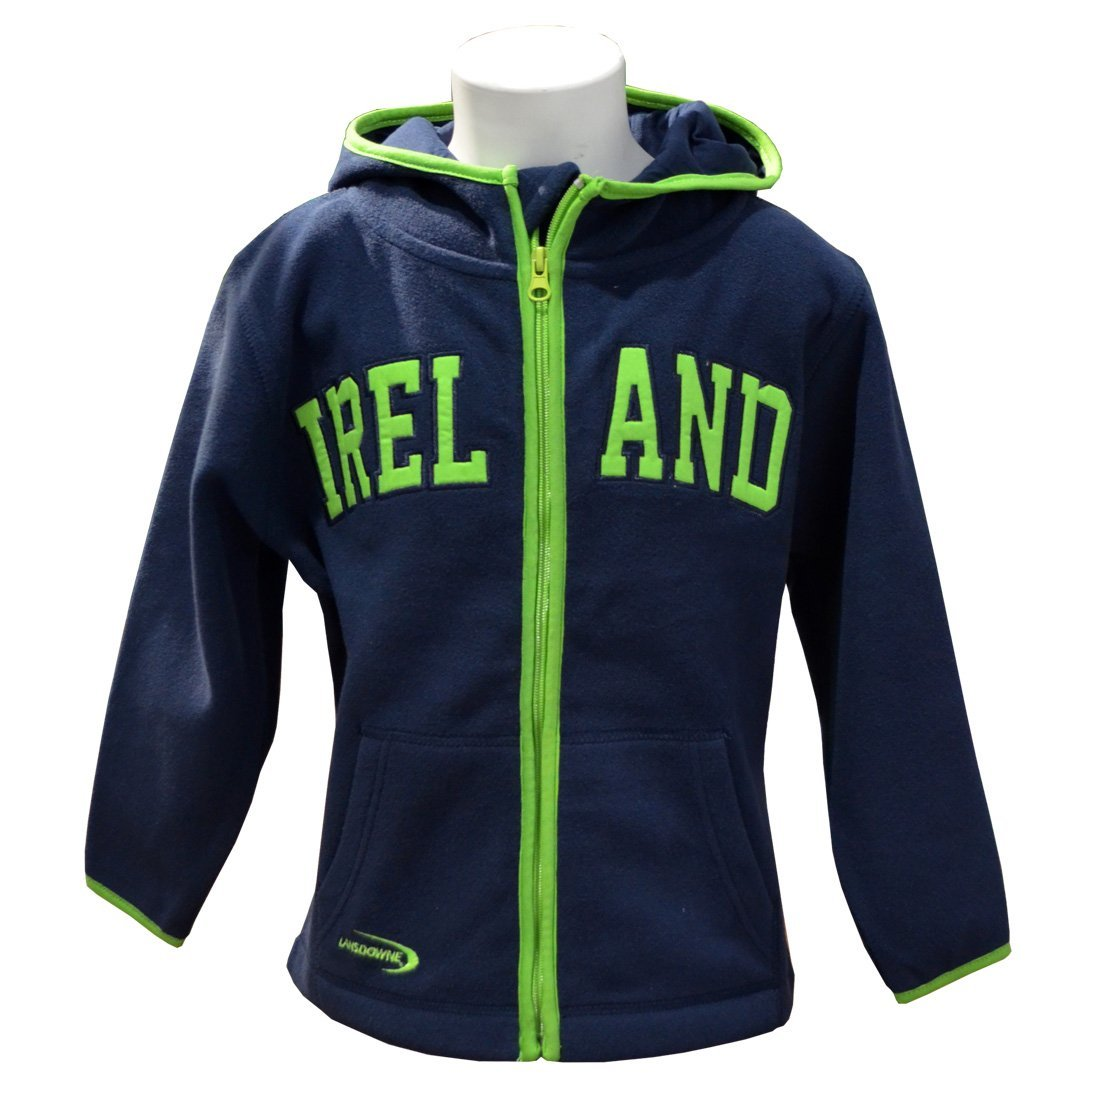 Navy Full Zip Hoodie With Green Trim Design And Ireland Text